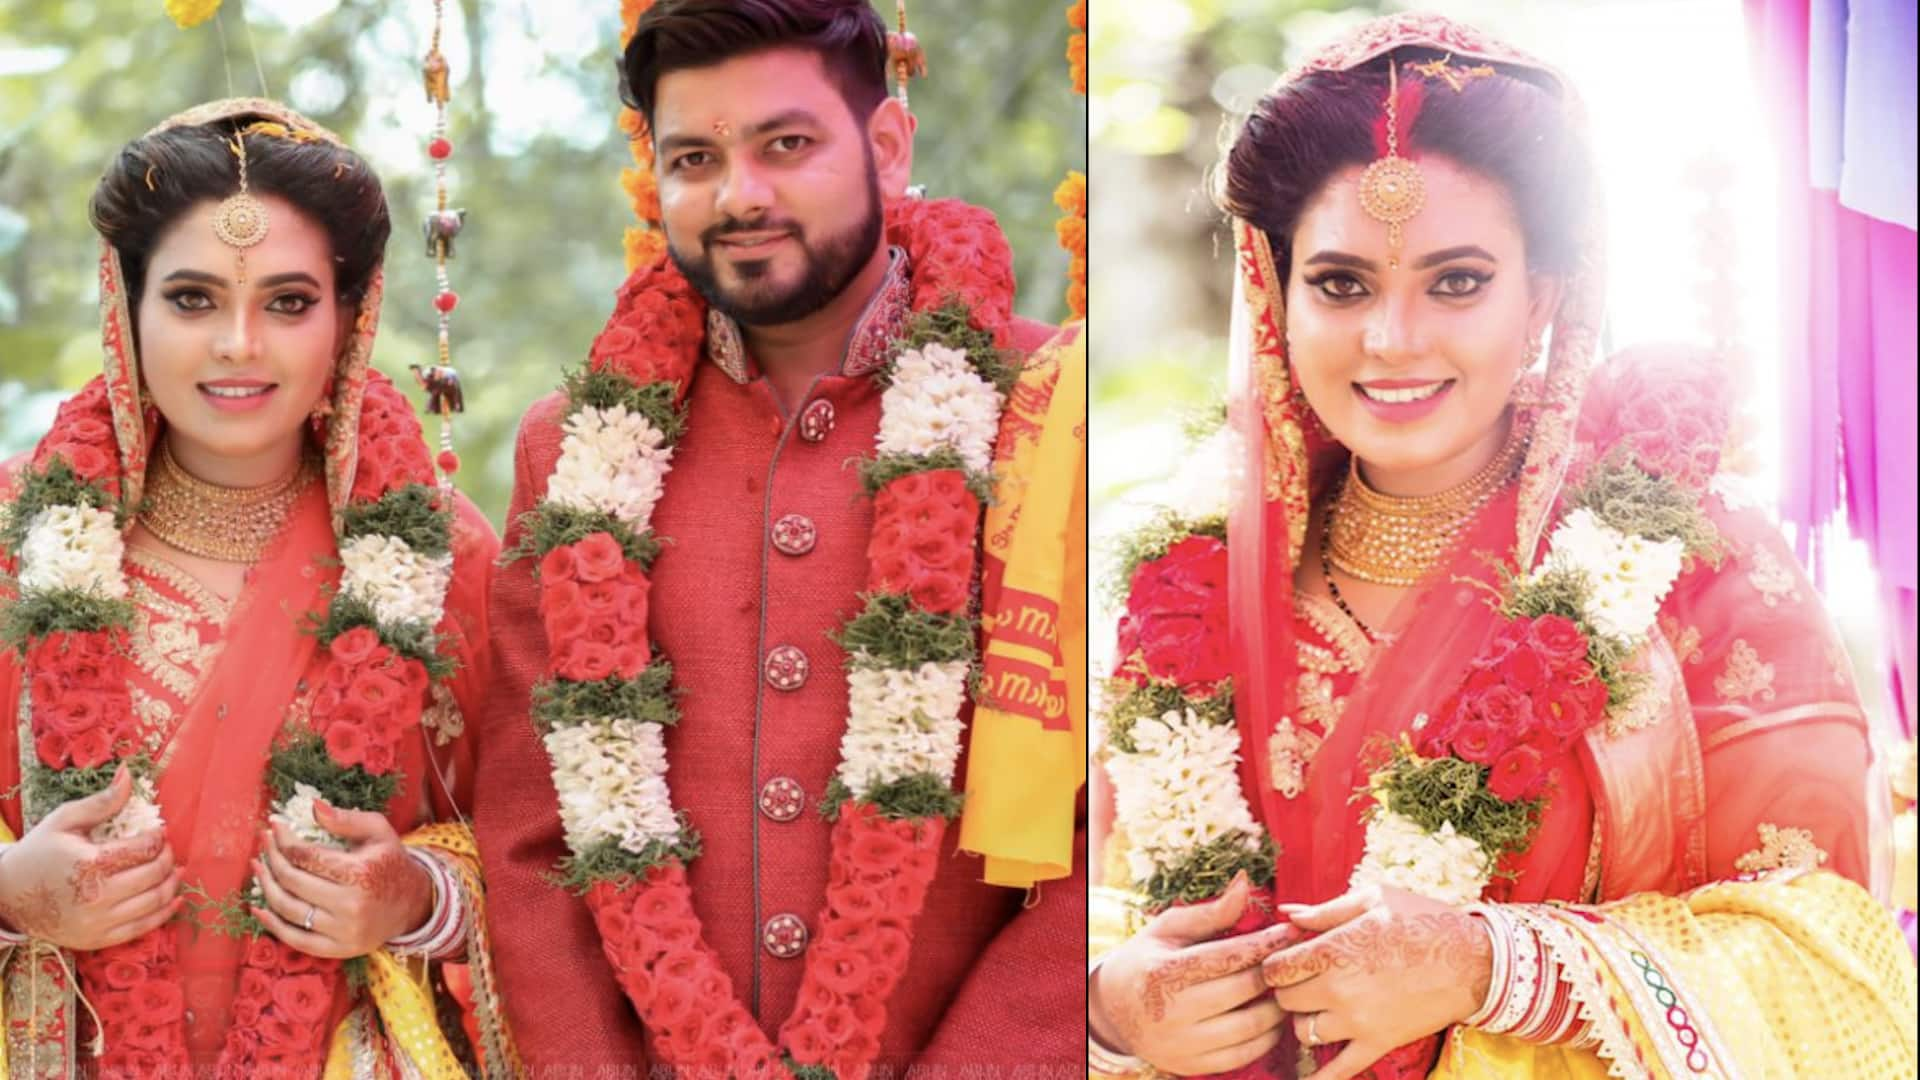 In Pictures: Young actress Ishaara Nair ties the knot with NRI